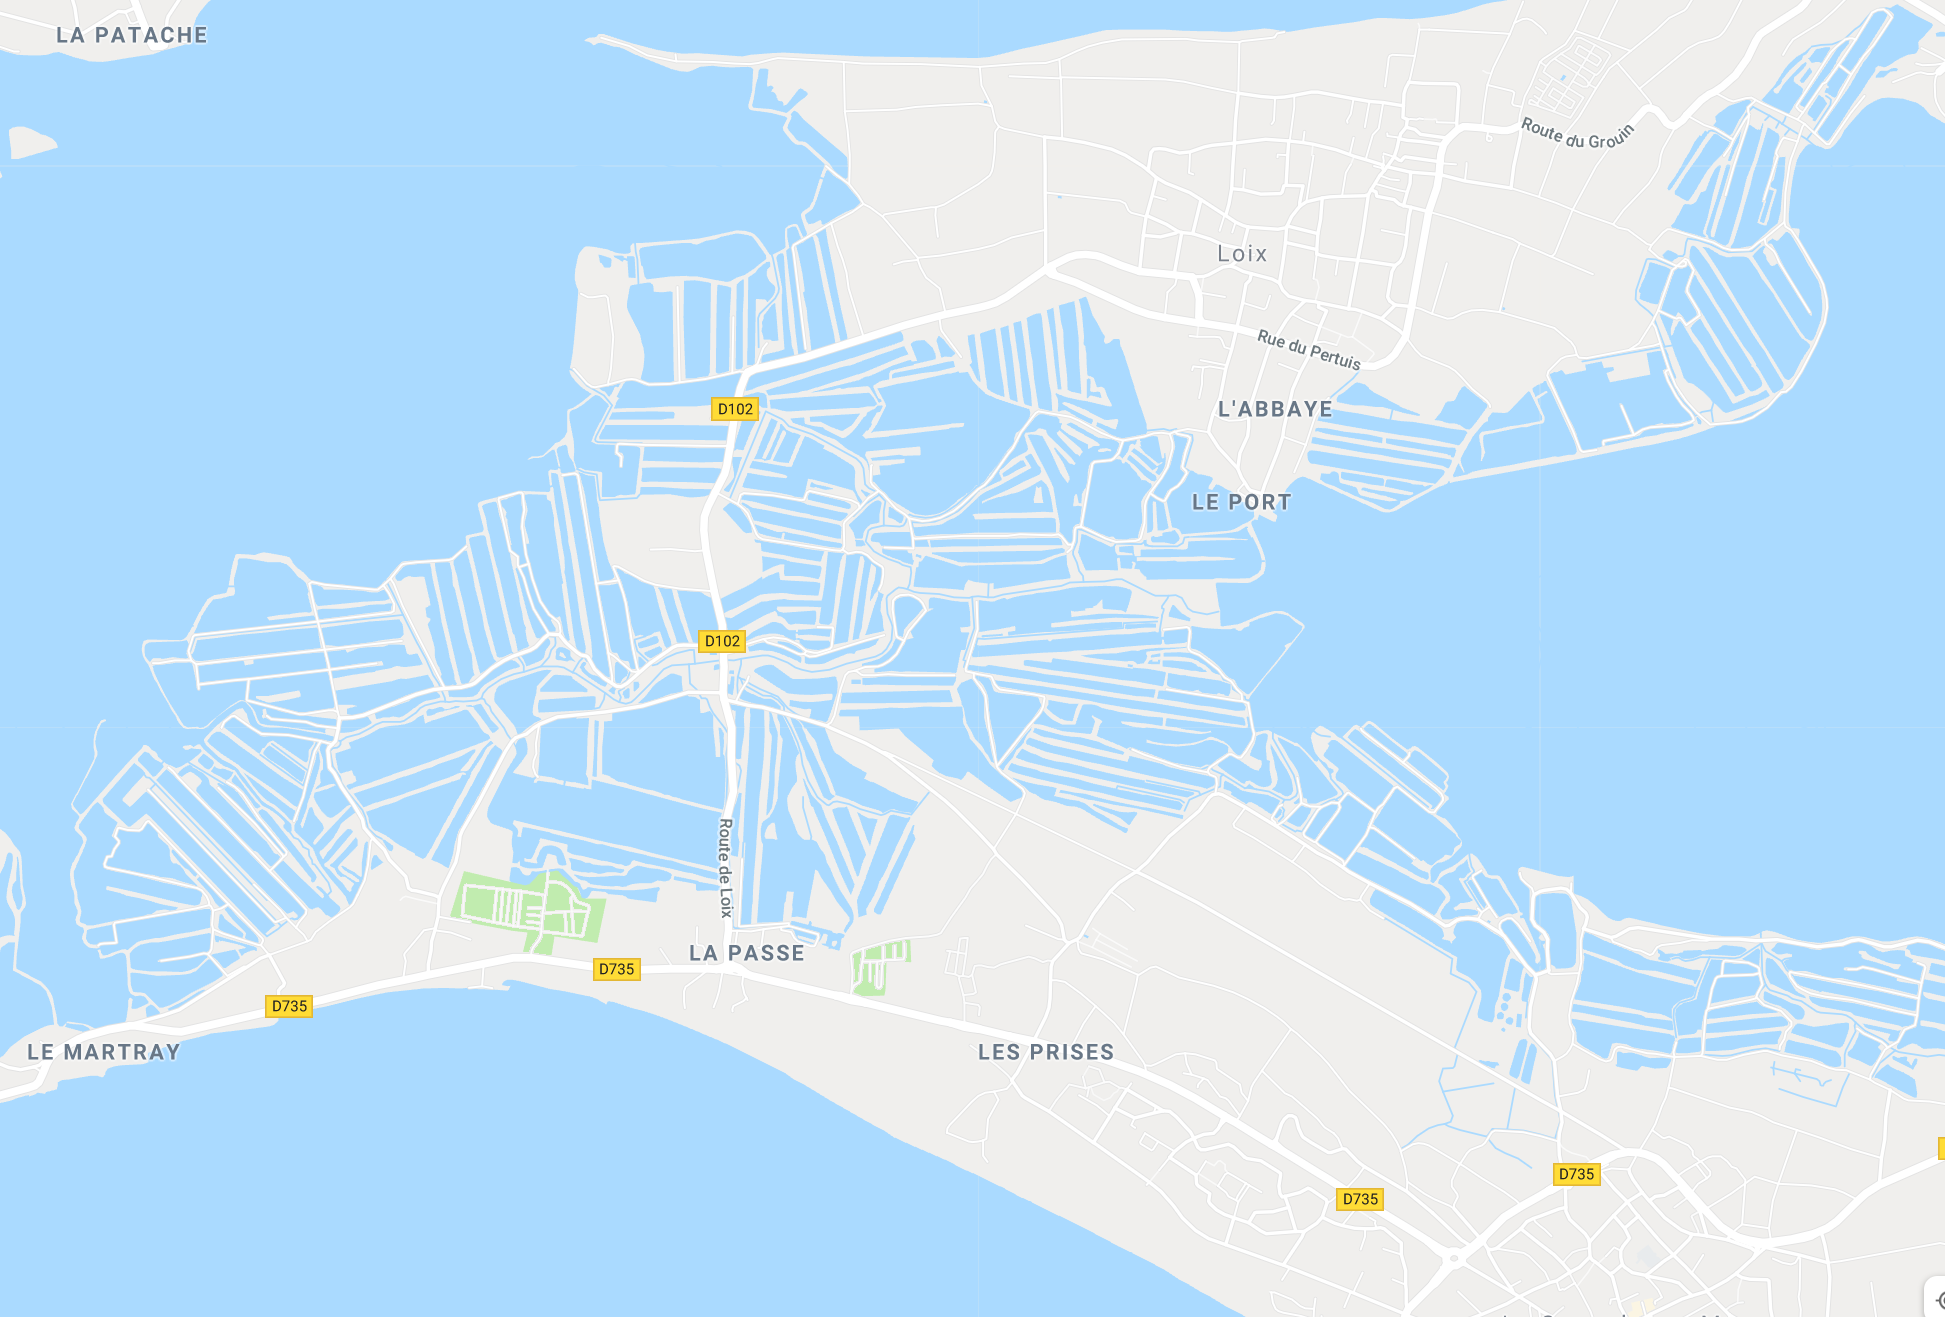 What the oyster farm water basins look like on the map in Ile de Re!